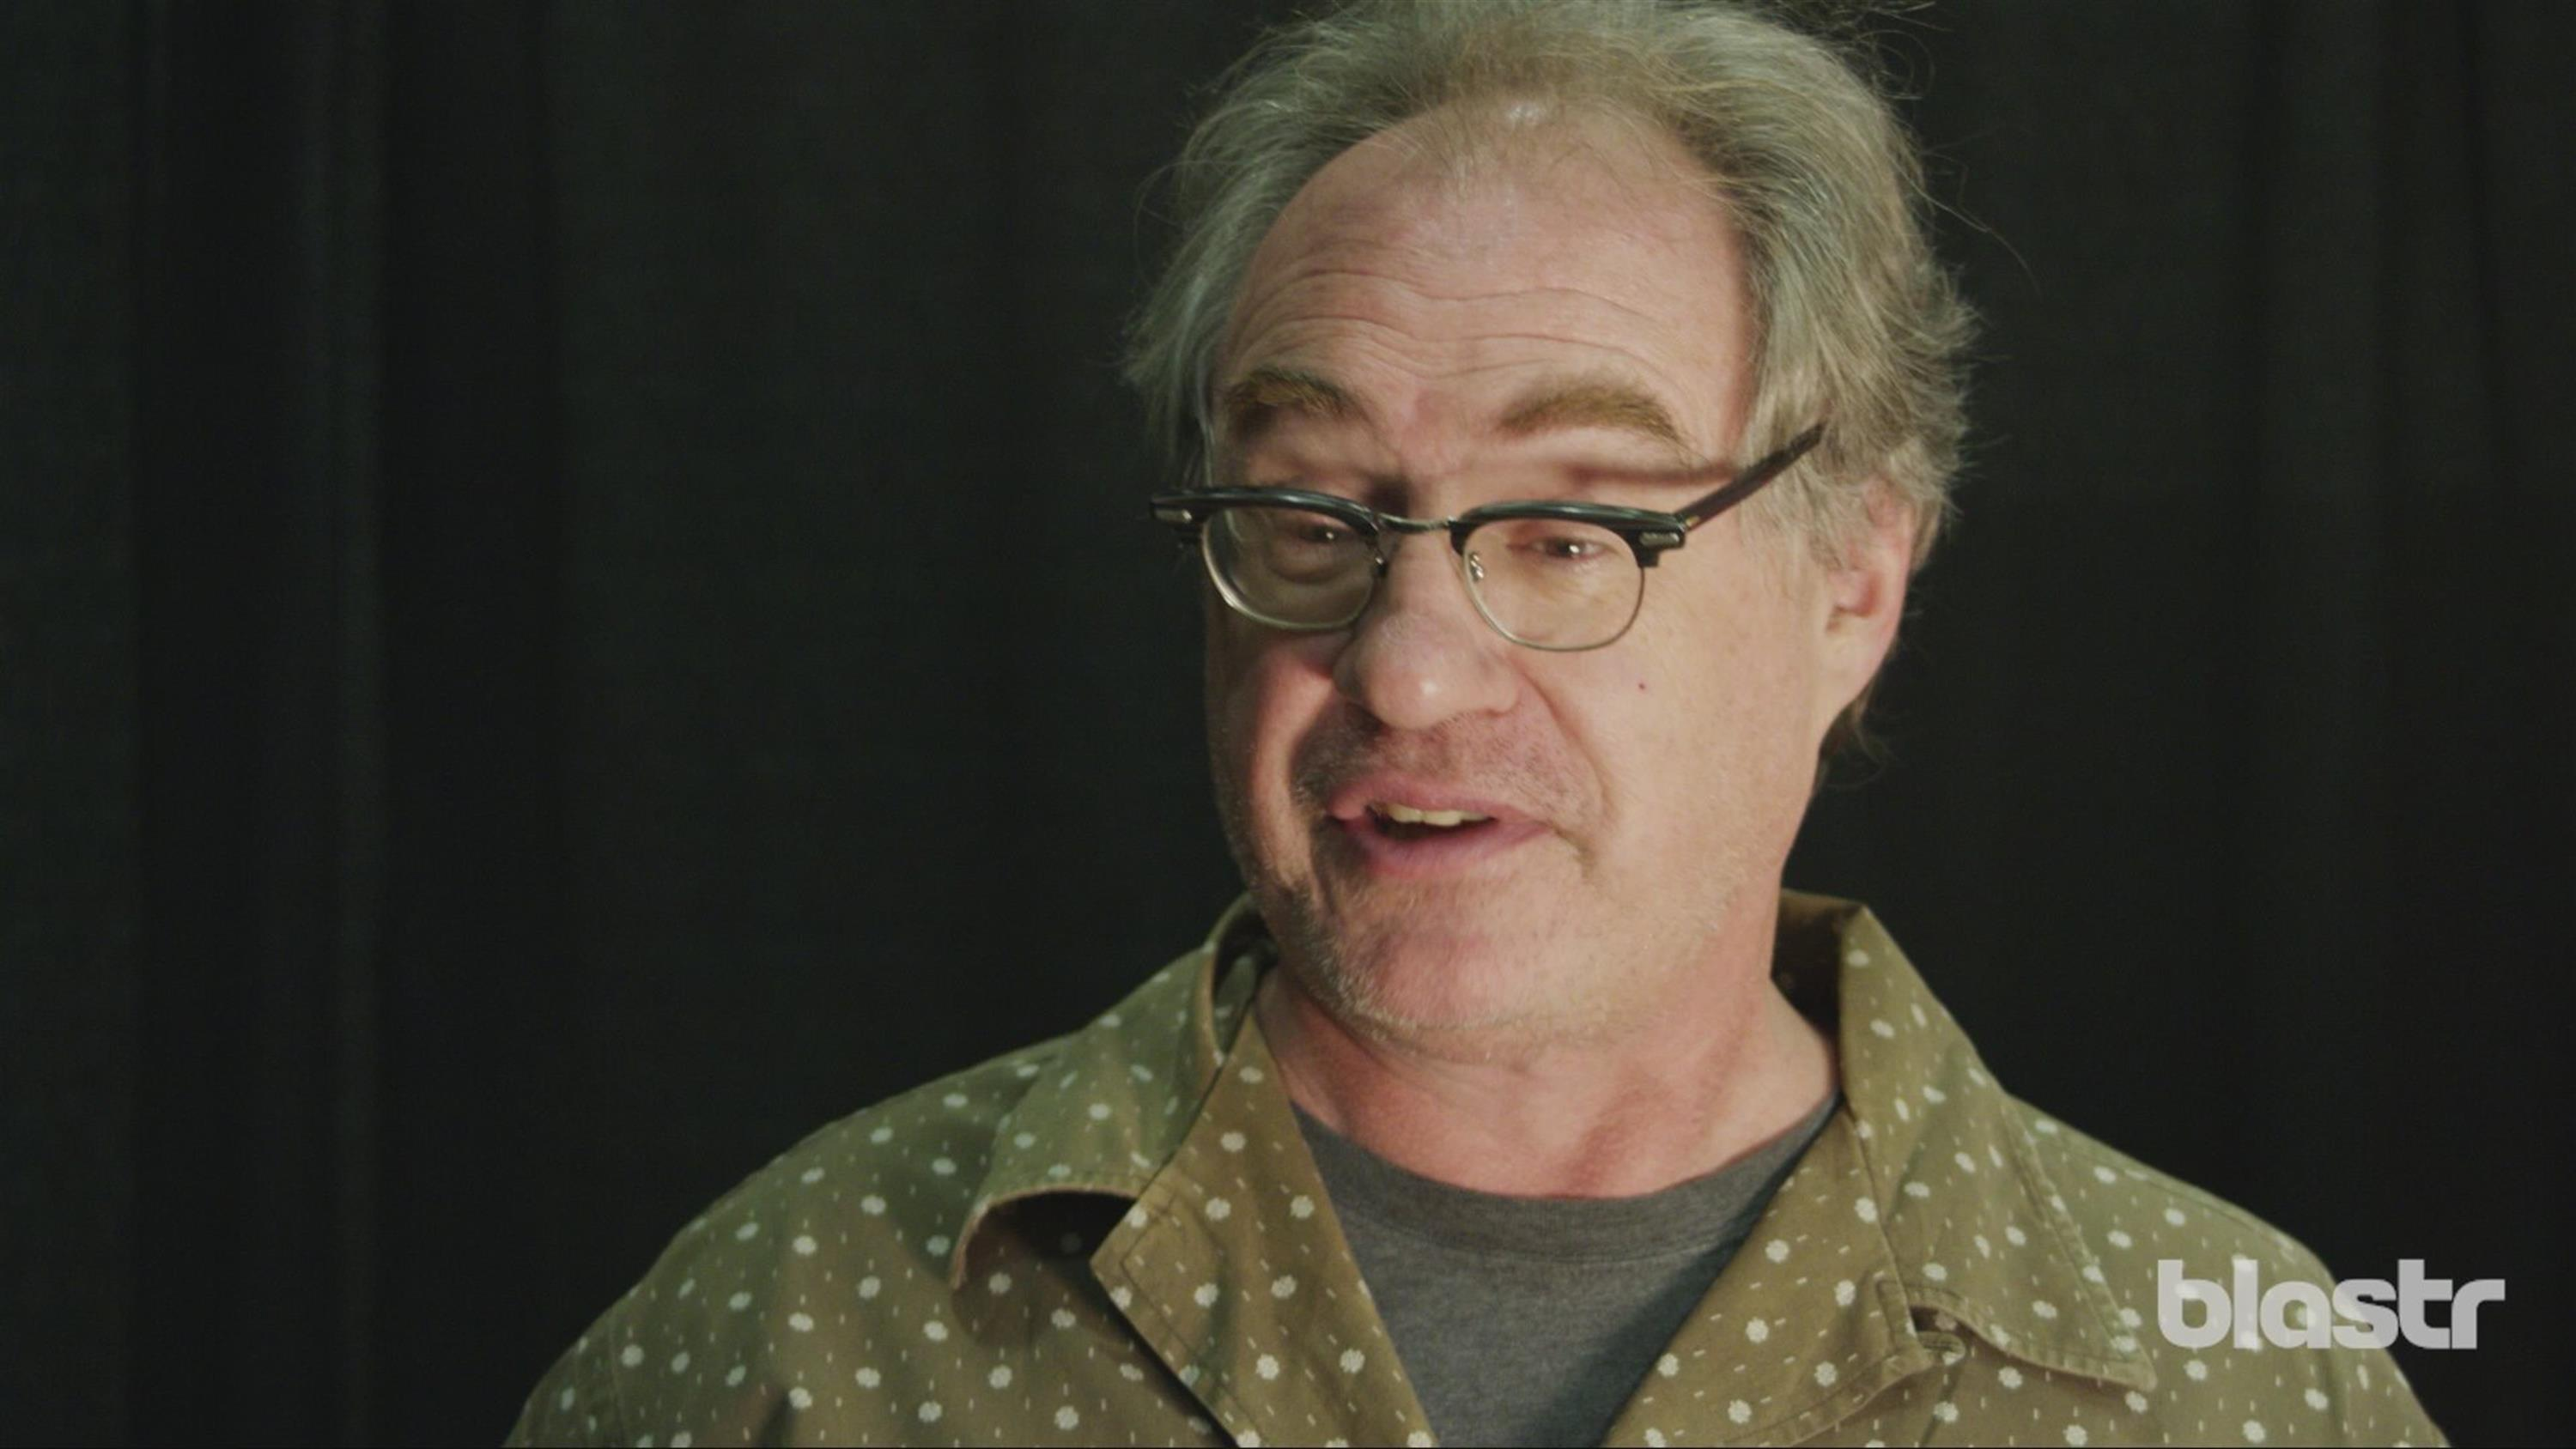 john billingsley mouthjohn billingsley net worth, john billingsley imdb, john billingsley actor, john billingsley star trek, john billingsley hockey, john billingsley movies, john billingsley twitter, john billingsley mouth, john billingsley dallas, john billingsley stargate, john billingsley west wing, john billingsley nintendo, john billingsley stroke, john billingsley enterprise, john billingsley newton iowa, john billingsley tv shows, john billingsley 2012, john billingsley leverage, john billingsley panama city fl, john billingsley texas